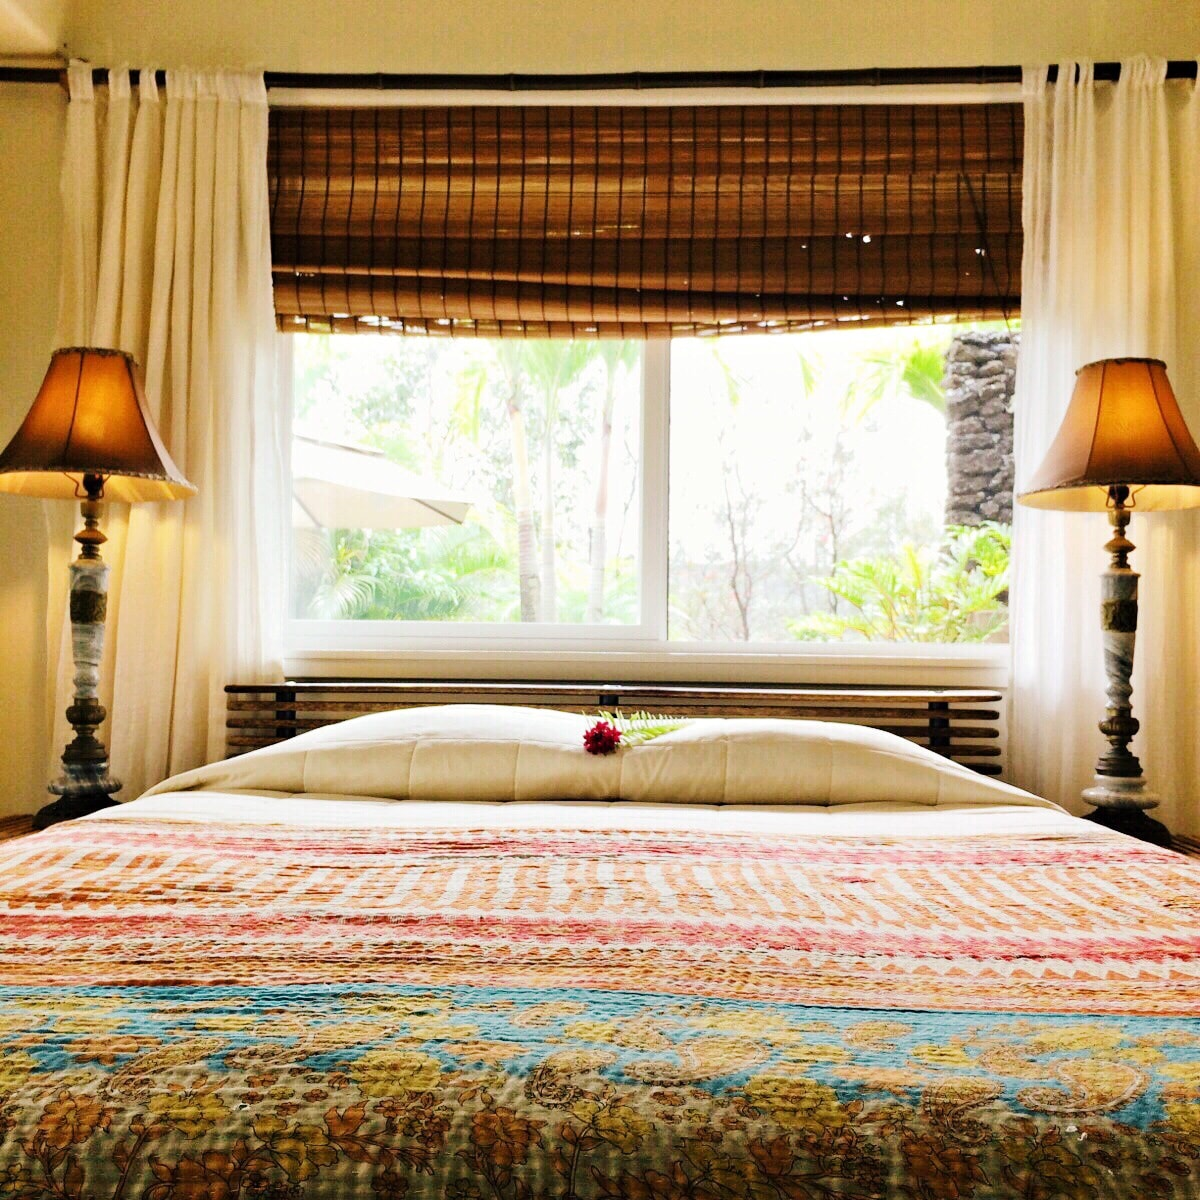 Roll around in luxurious linens